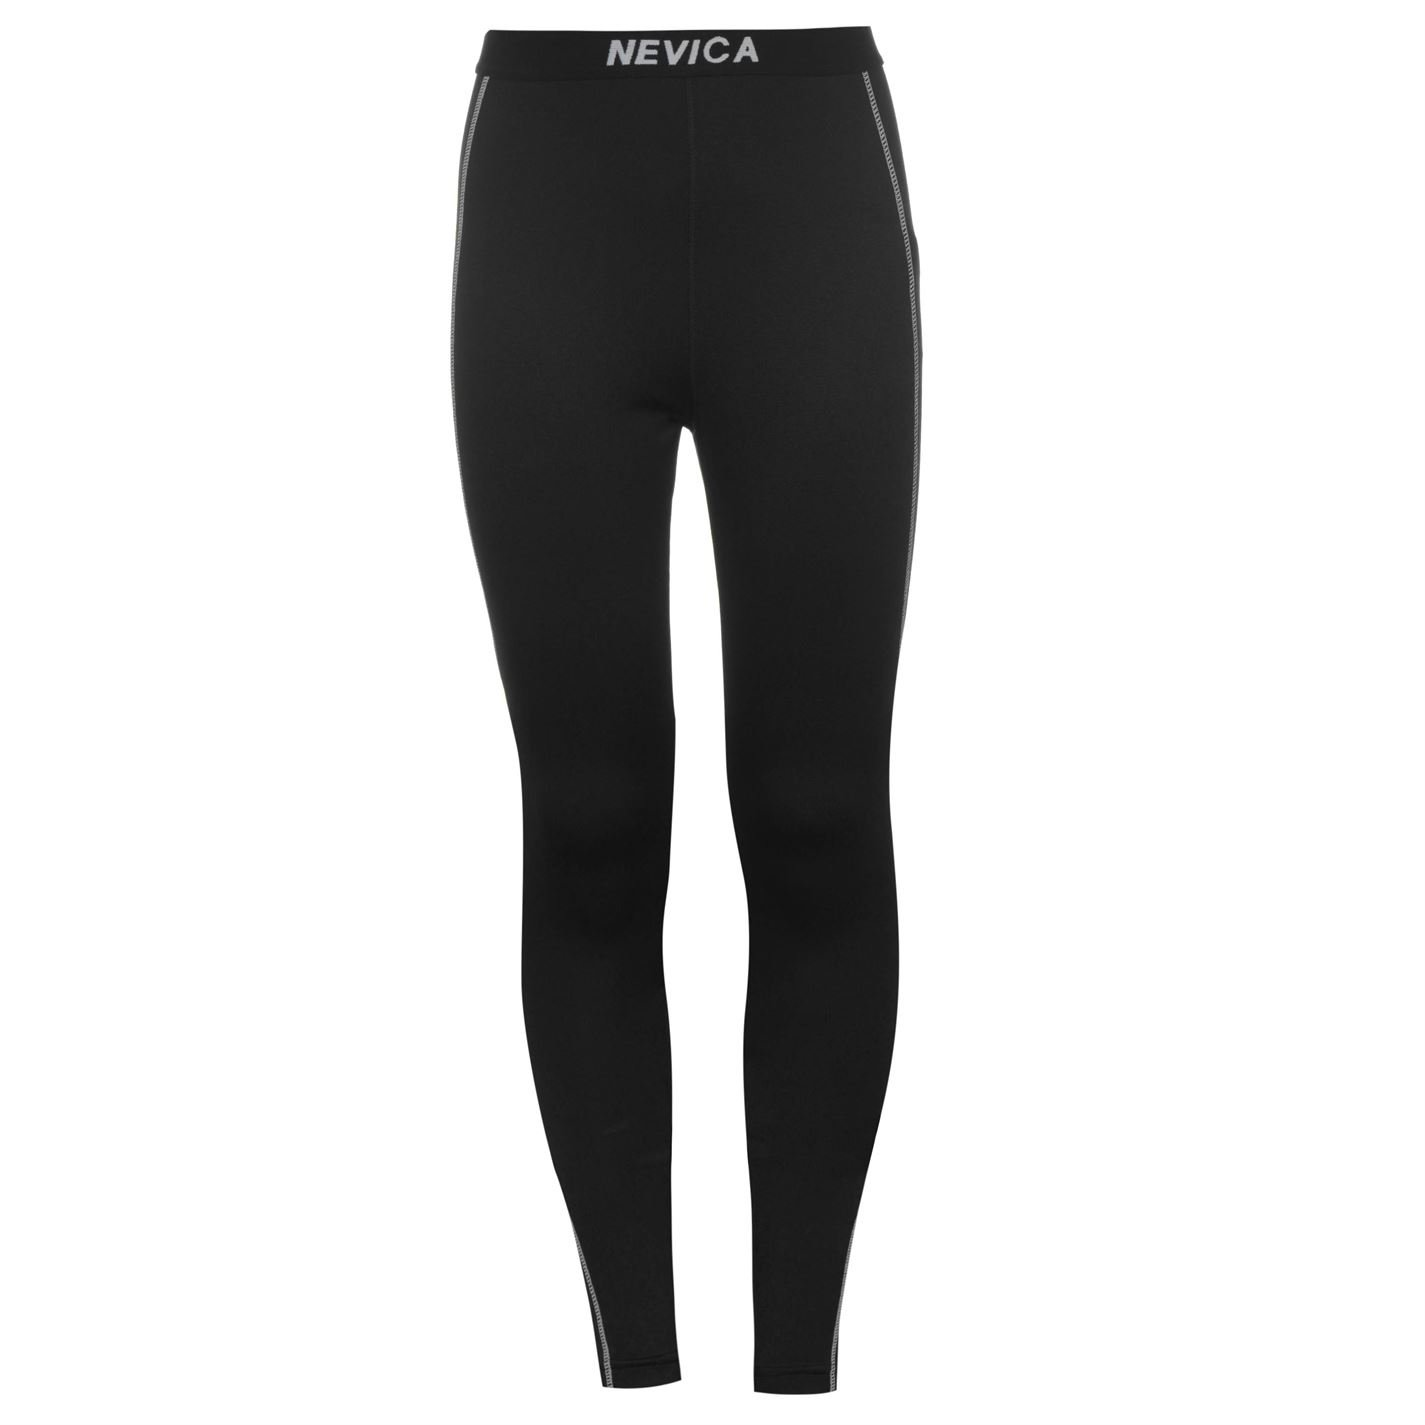 Nevica Kids Juniors Vail Baselayer Pants Bottoms Compression